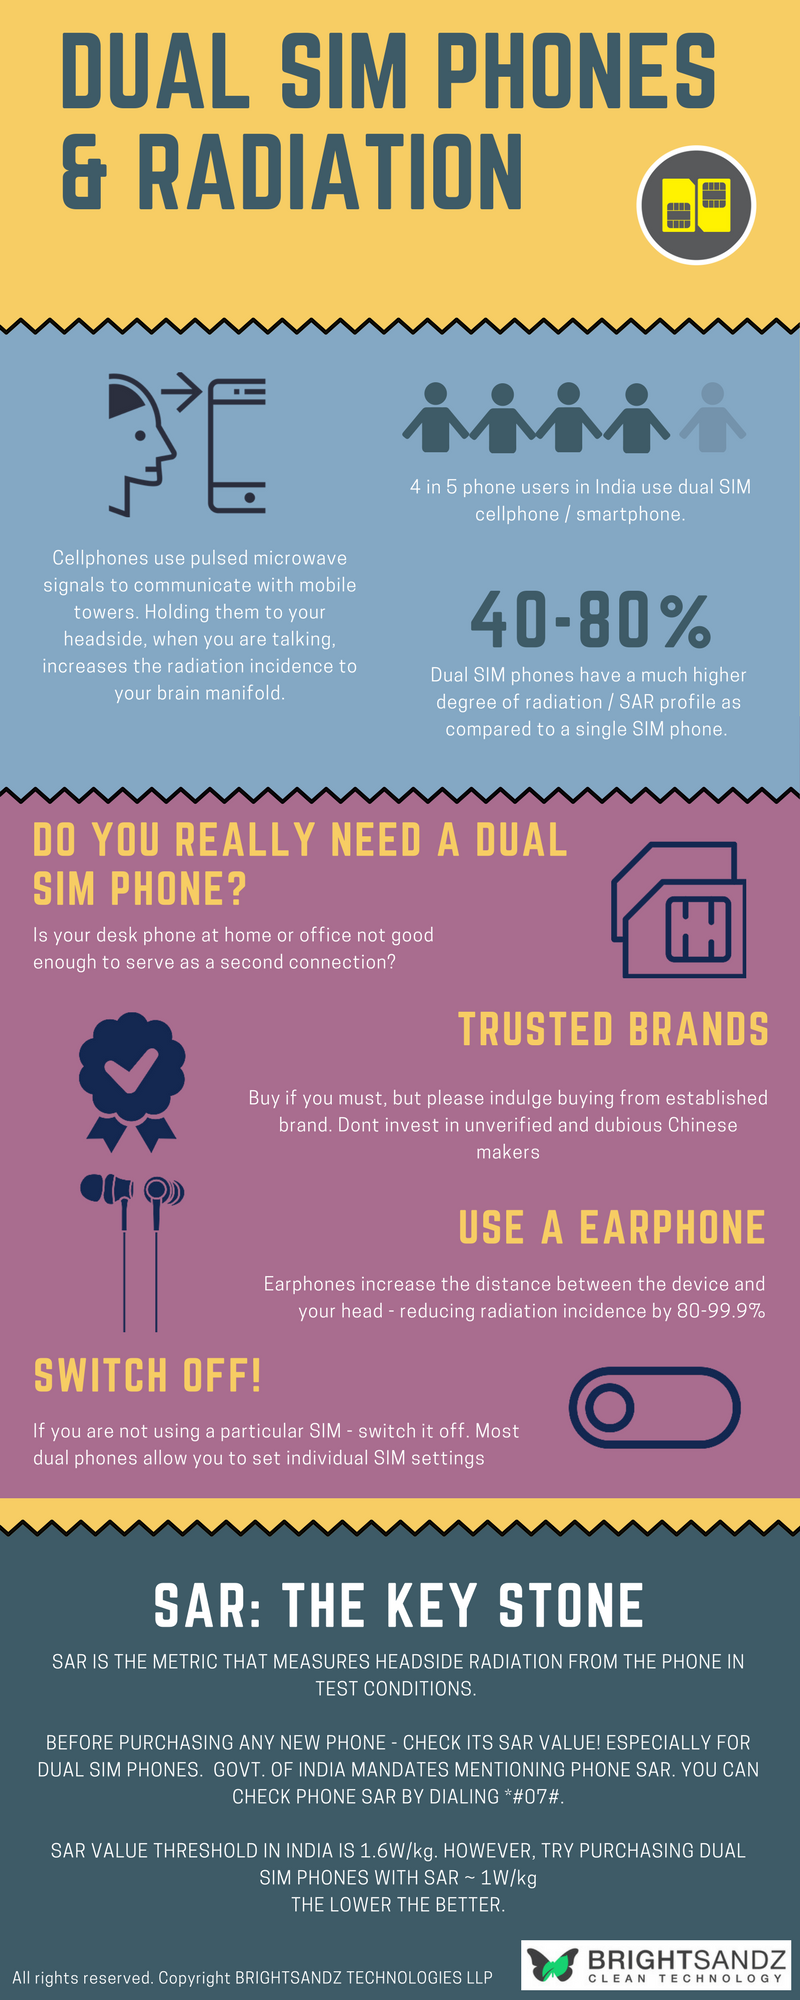 Here's what you should know about dual SIM phone radiation